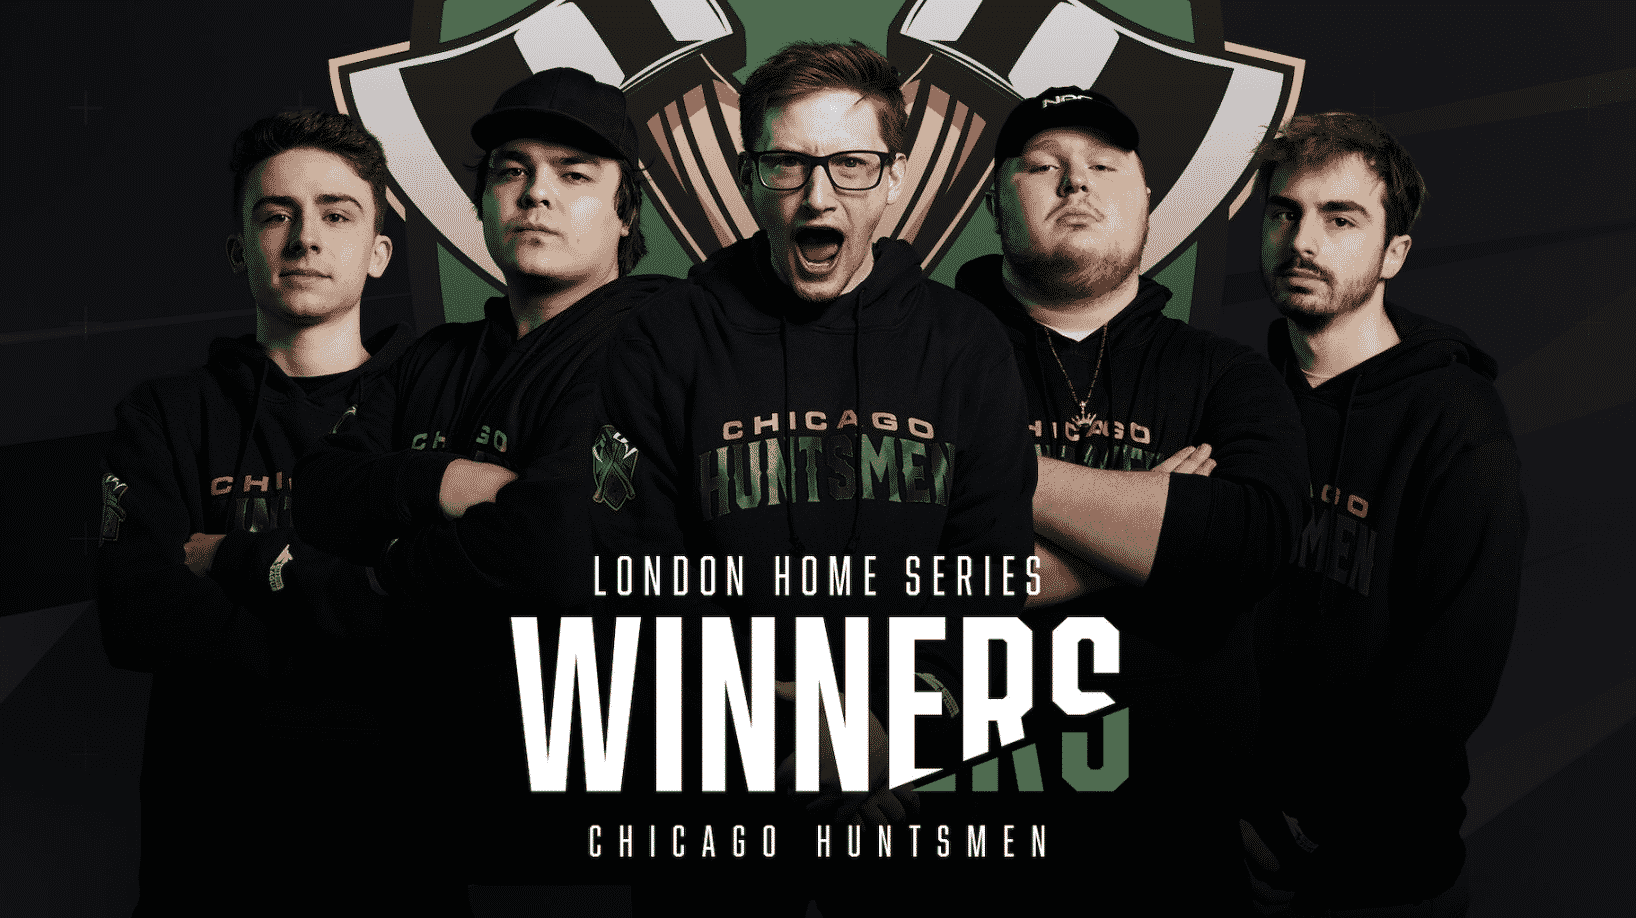 London Home Series Winners Chicago Huntsmen